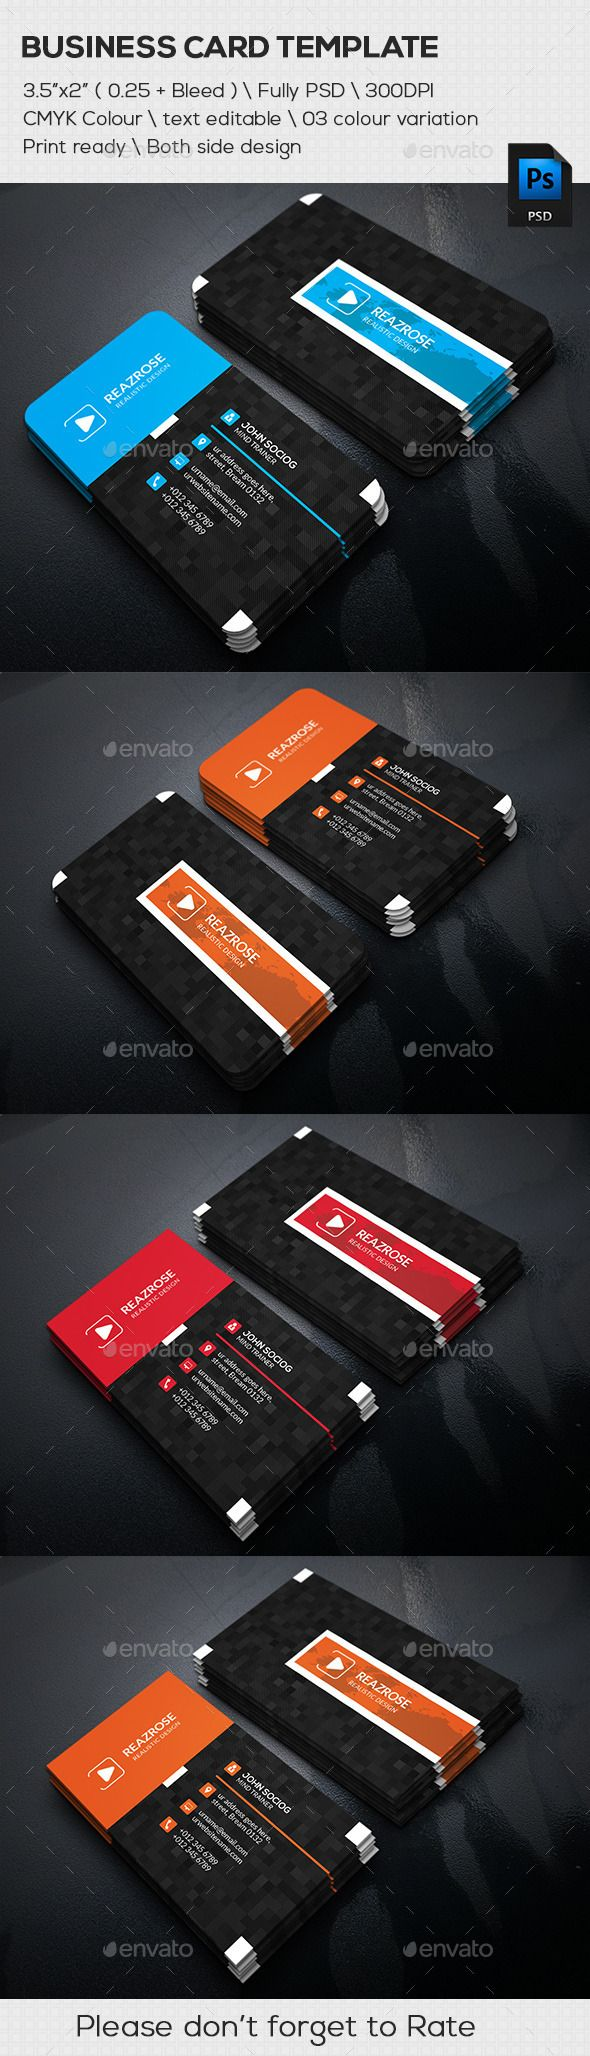 51 best BEST PHOTOGRAPHER BUSINESS CARDS EXAMPLE images on Pinterest ...